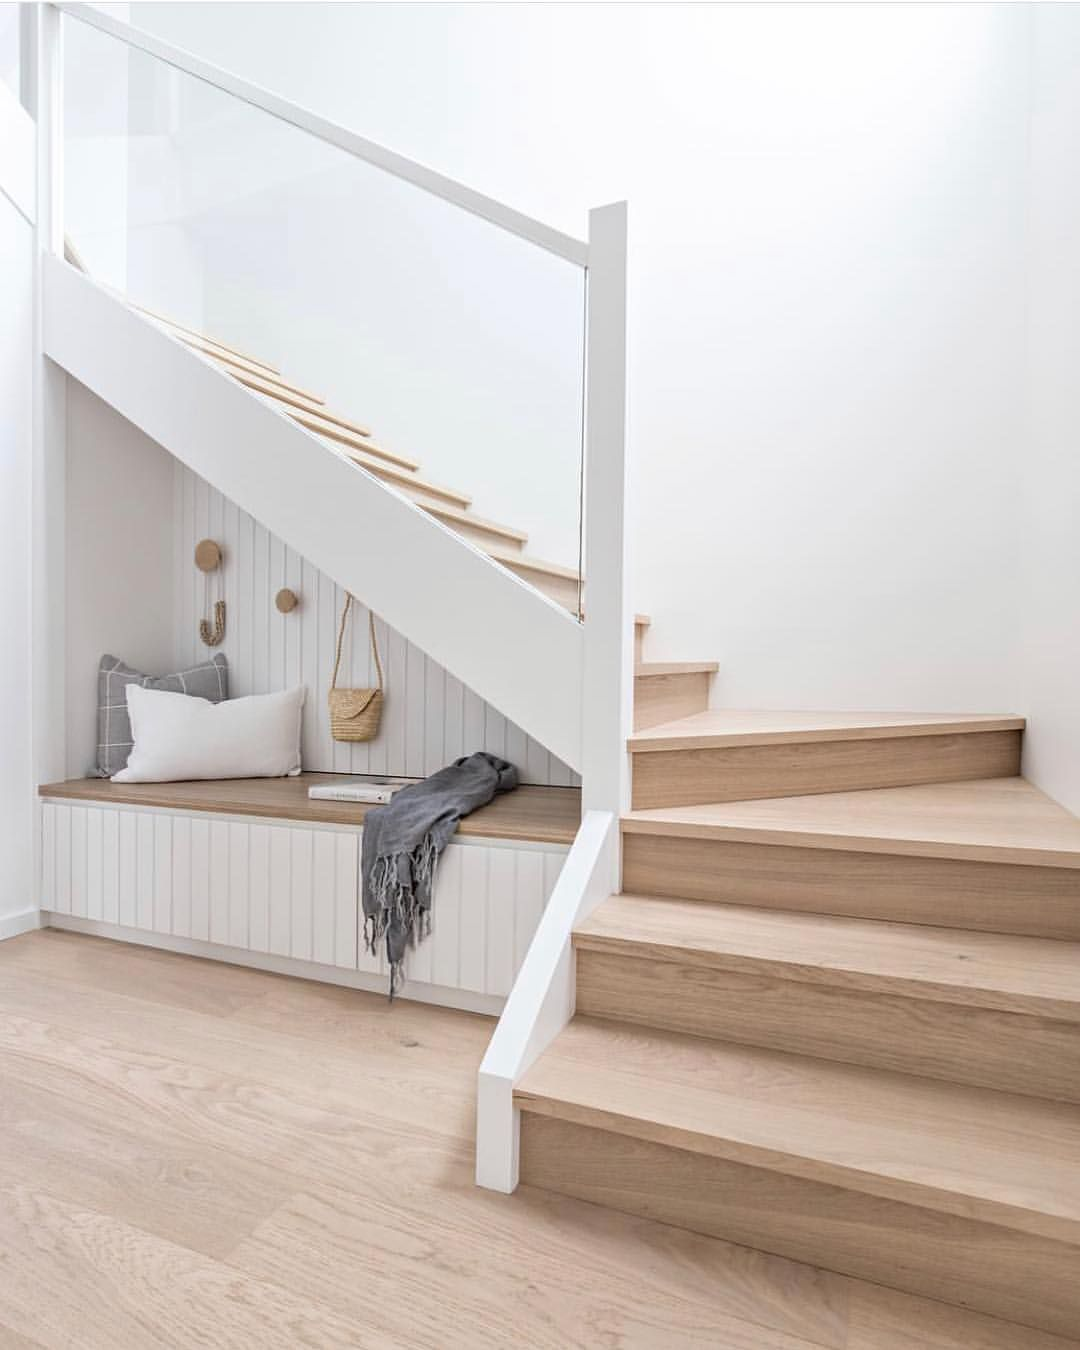 26 Incredible Under The Stairs Utilization Ideas: S T A I R S • This Area Of The Home Really Allows Some